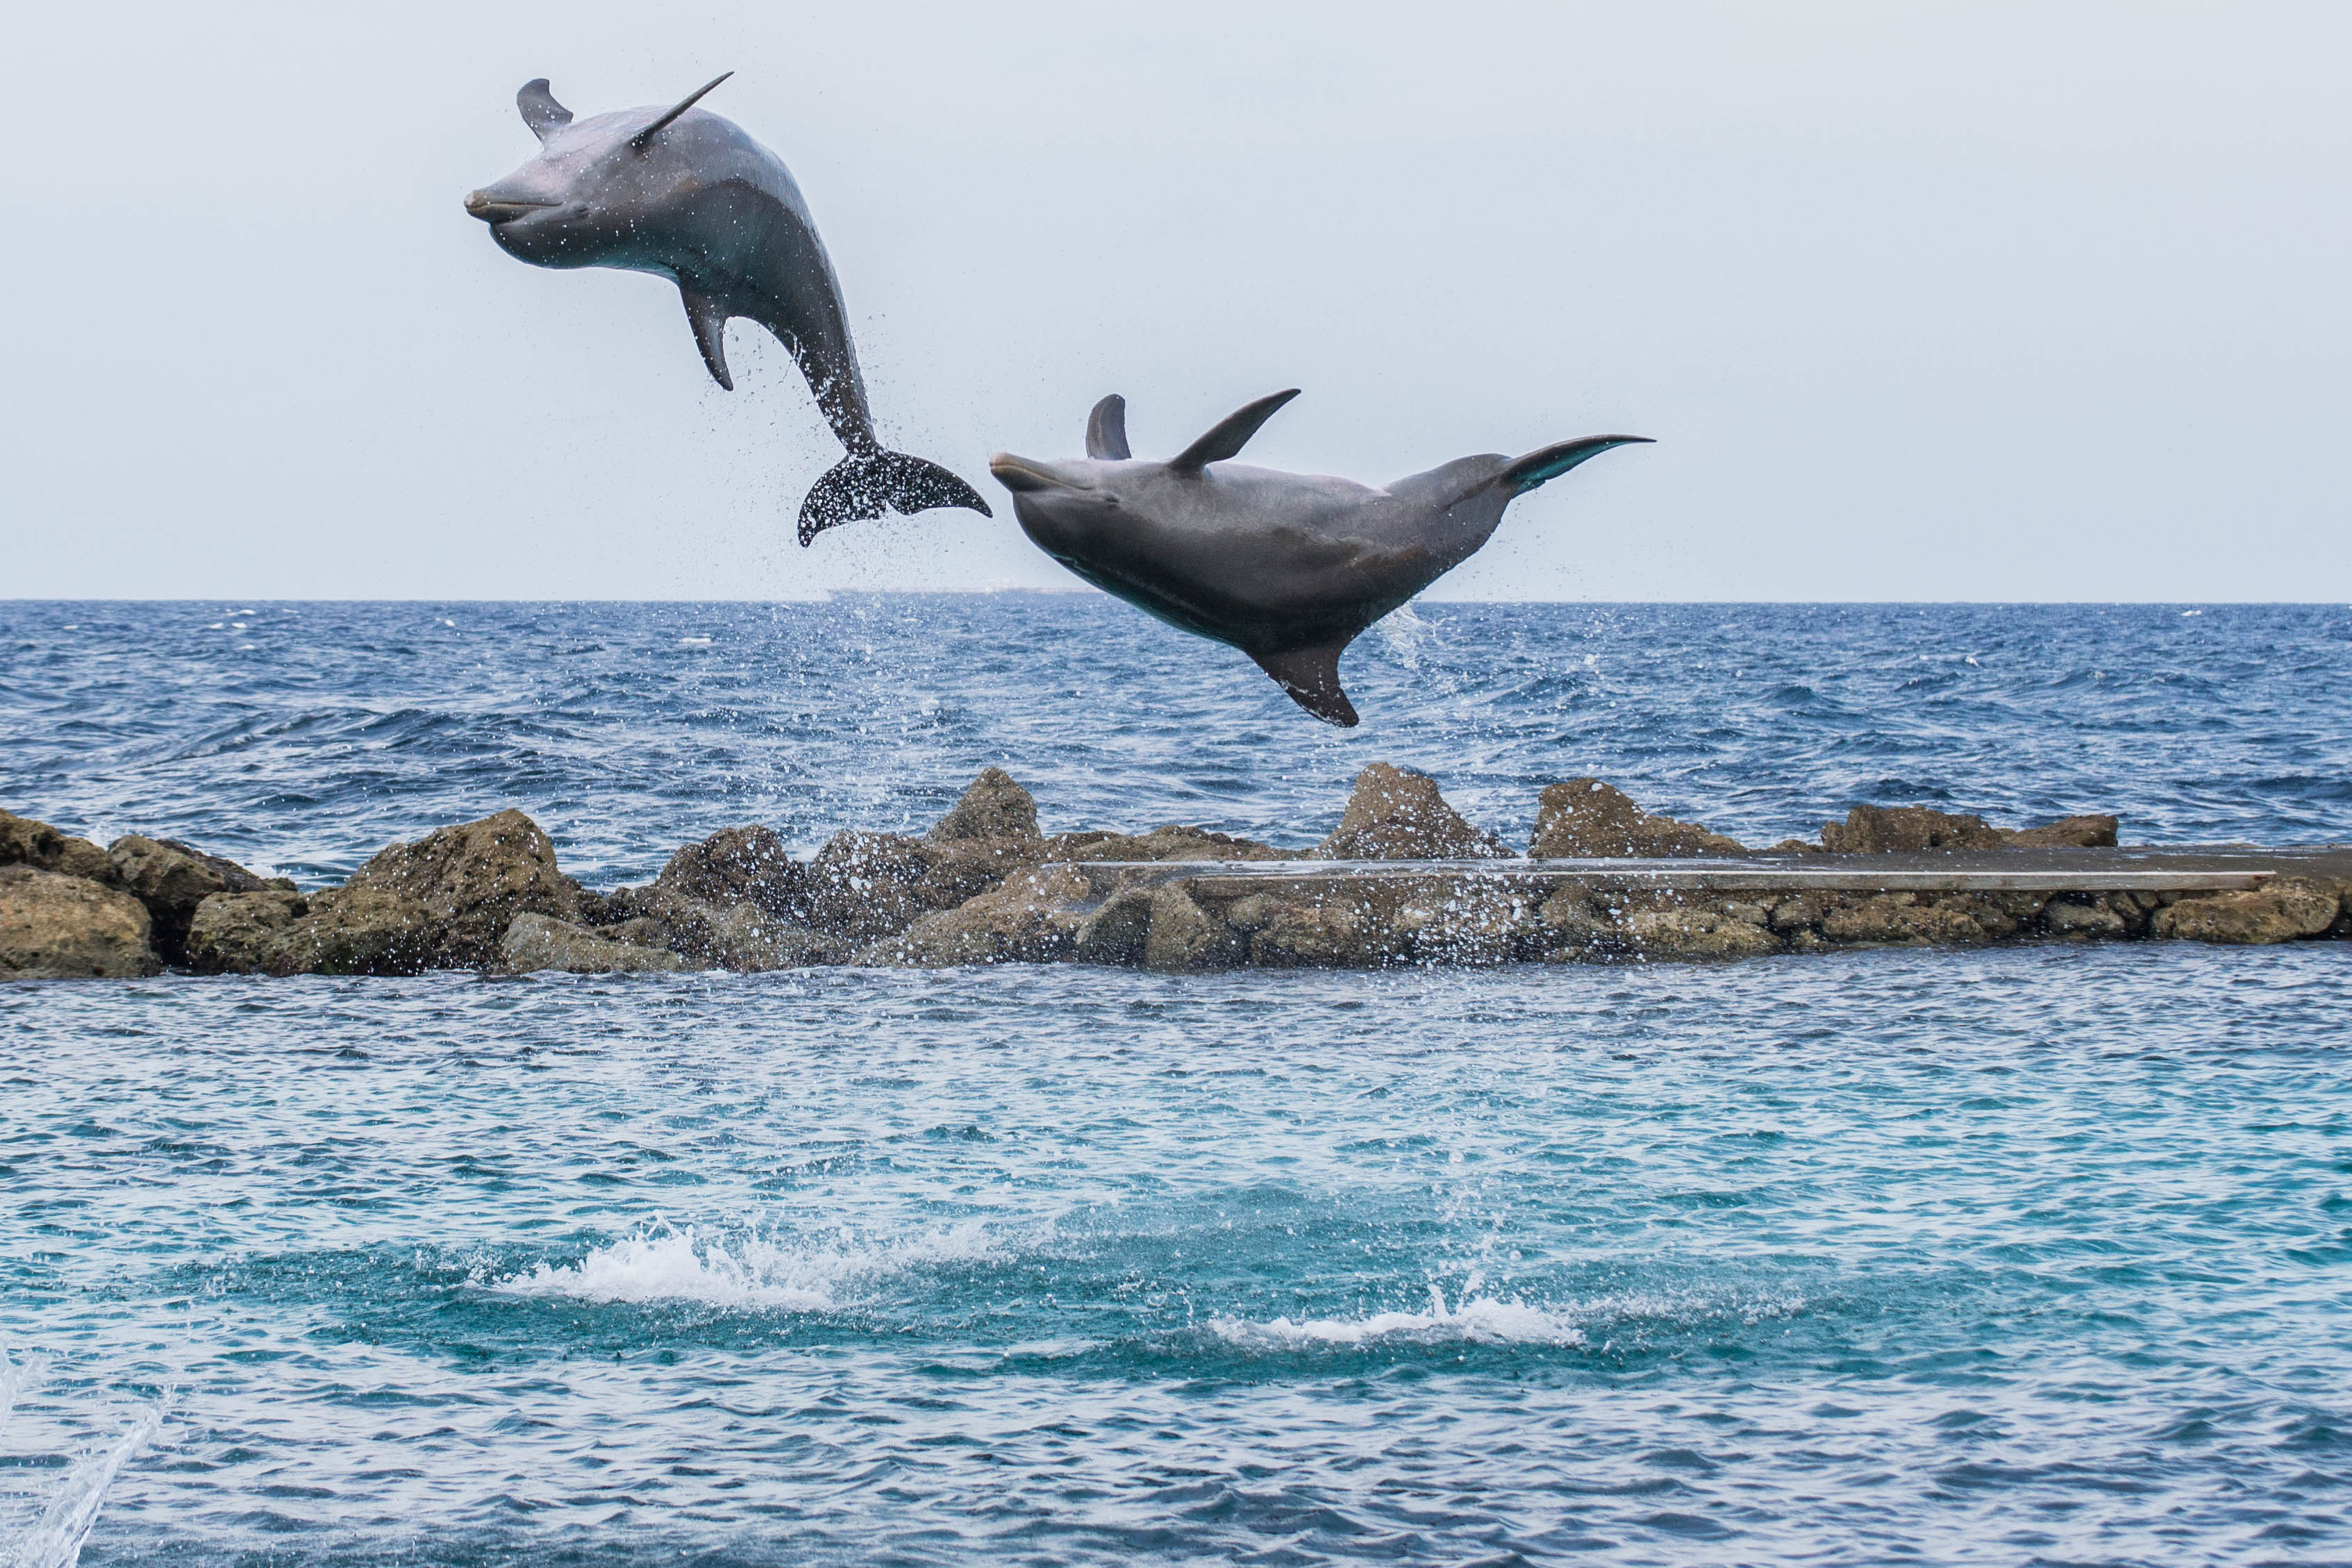 Dolphins jumping out of the water making a heart